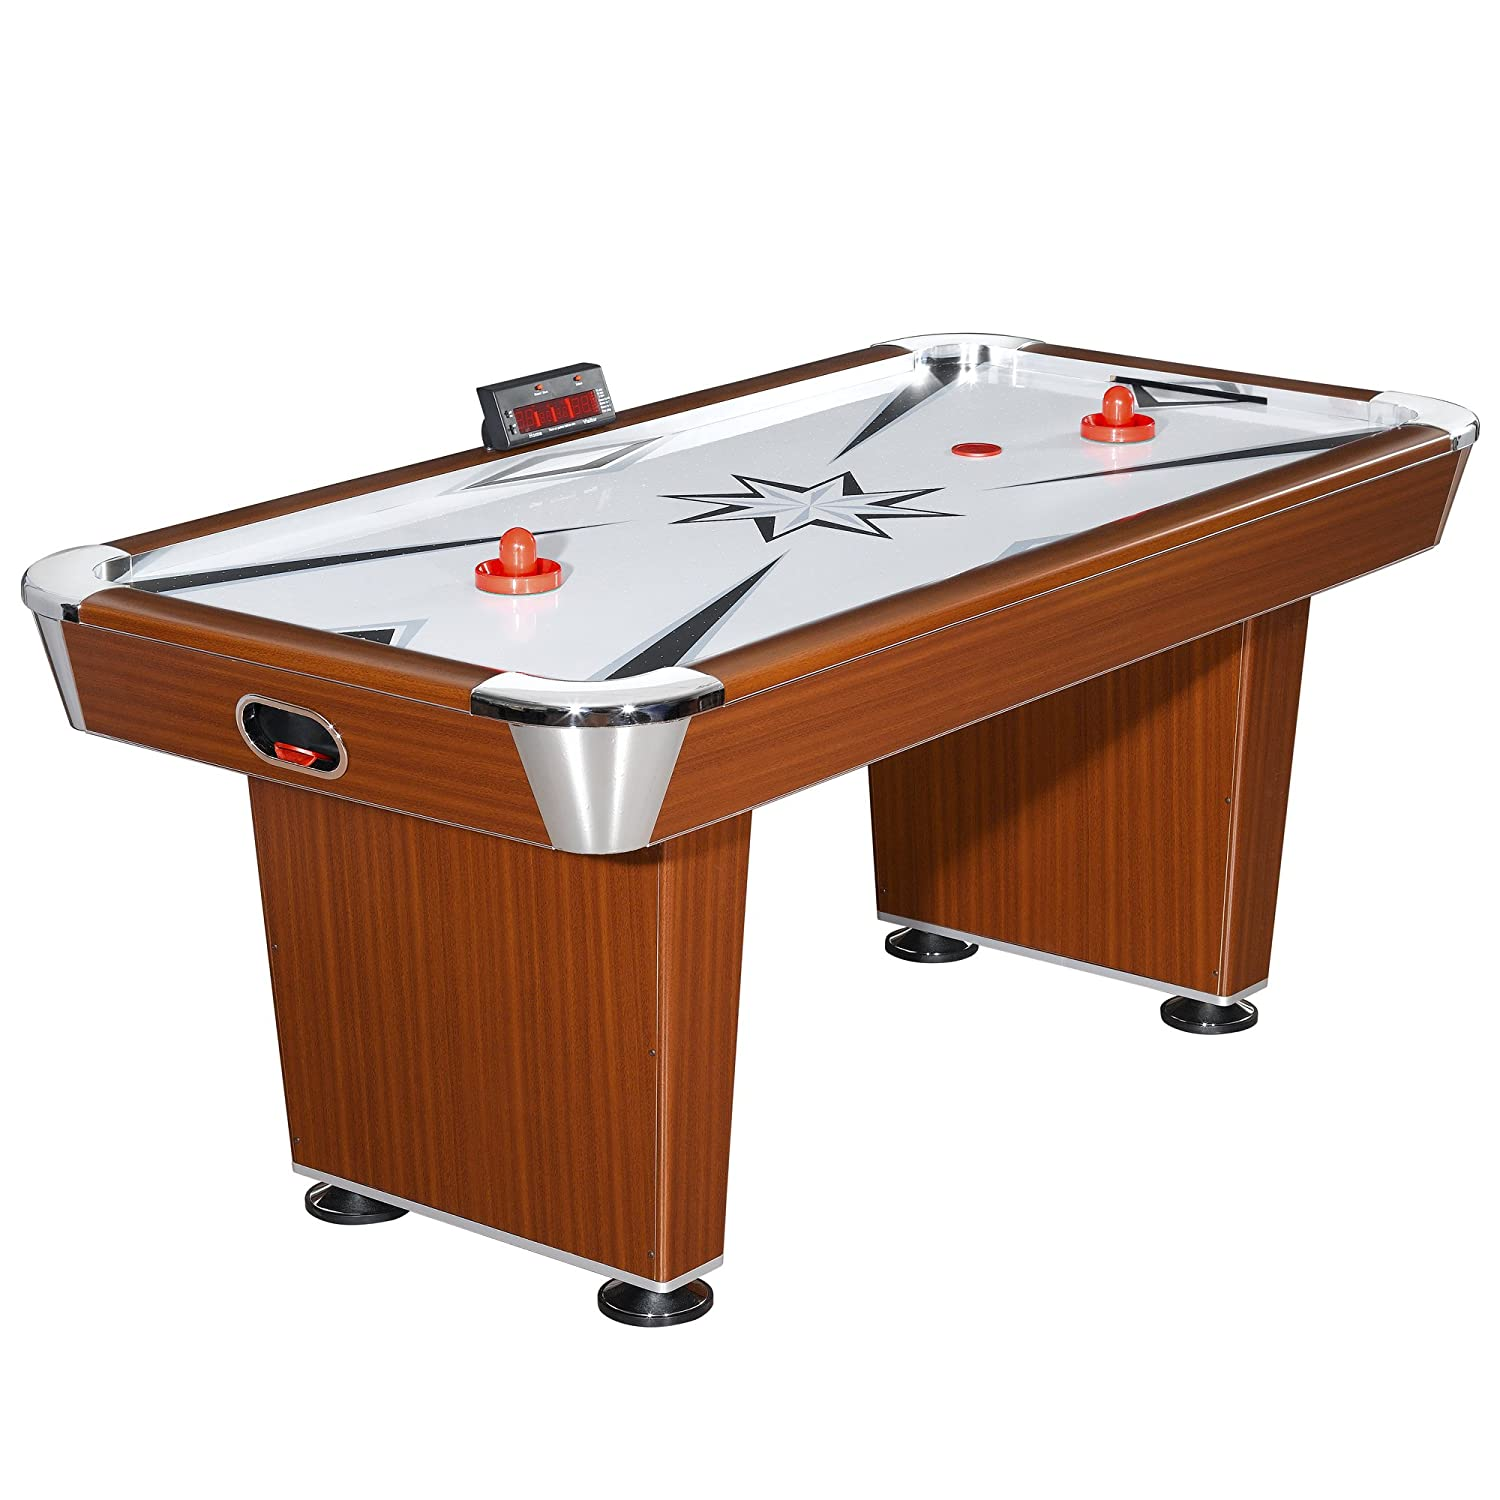 Hathaway Midtown 6' Air Hockey Family Game Table with Electronic Scoring, High-Powered Blower